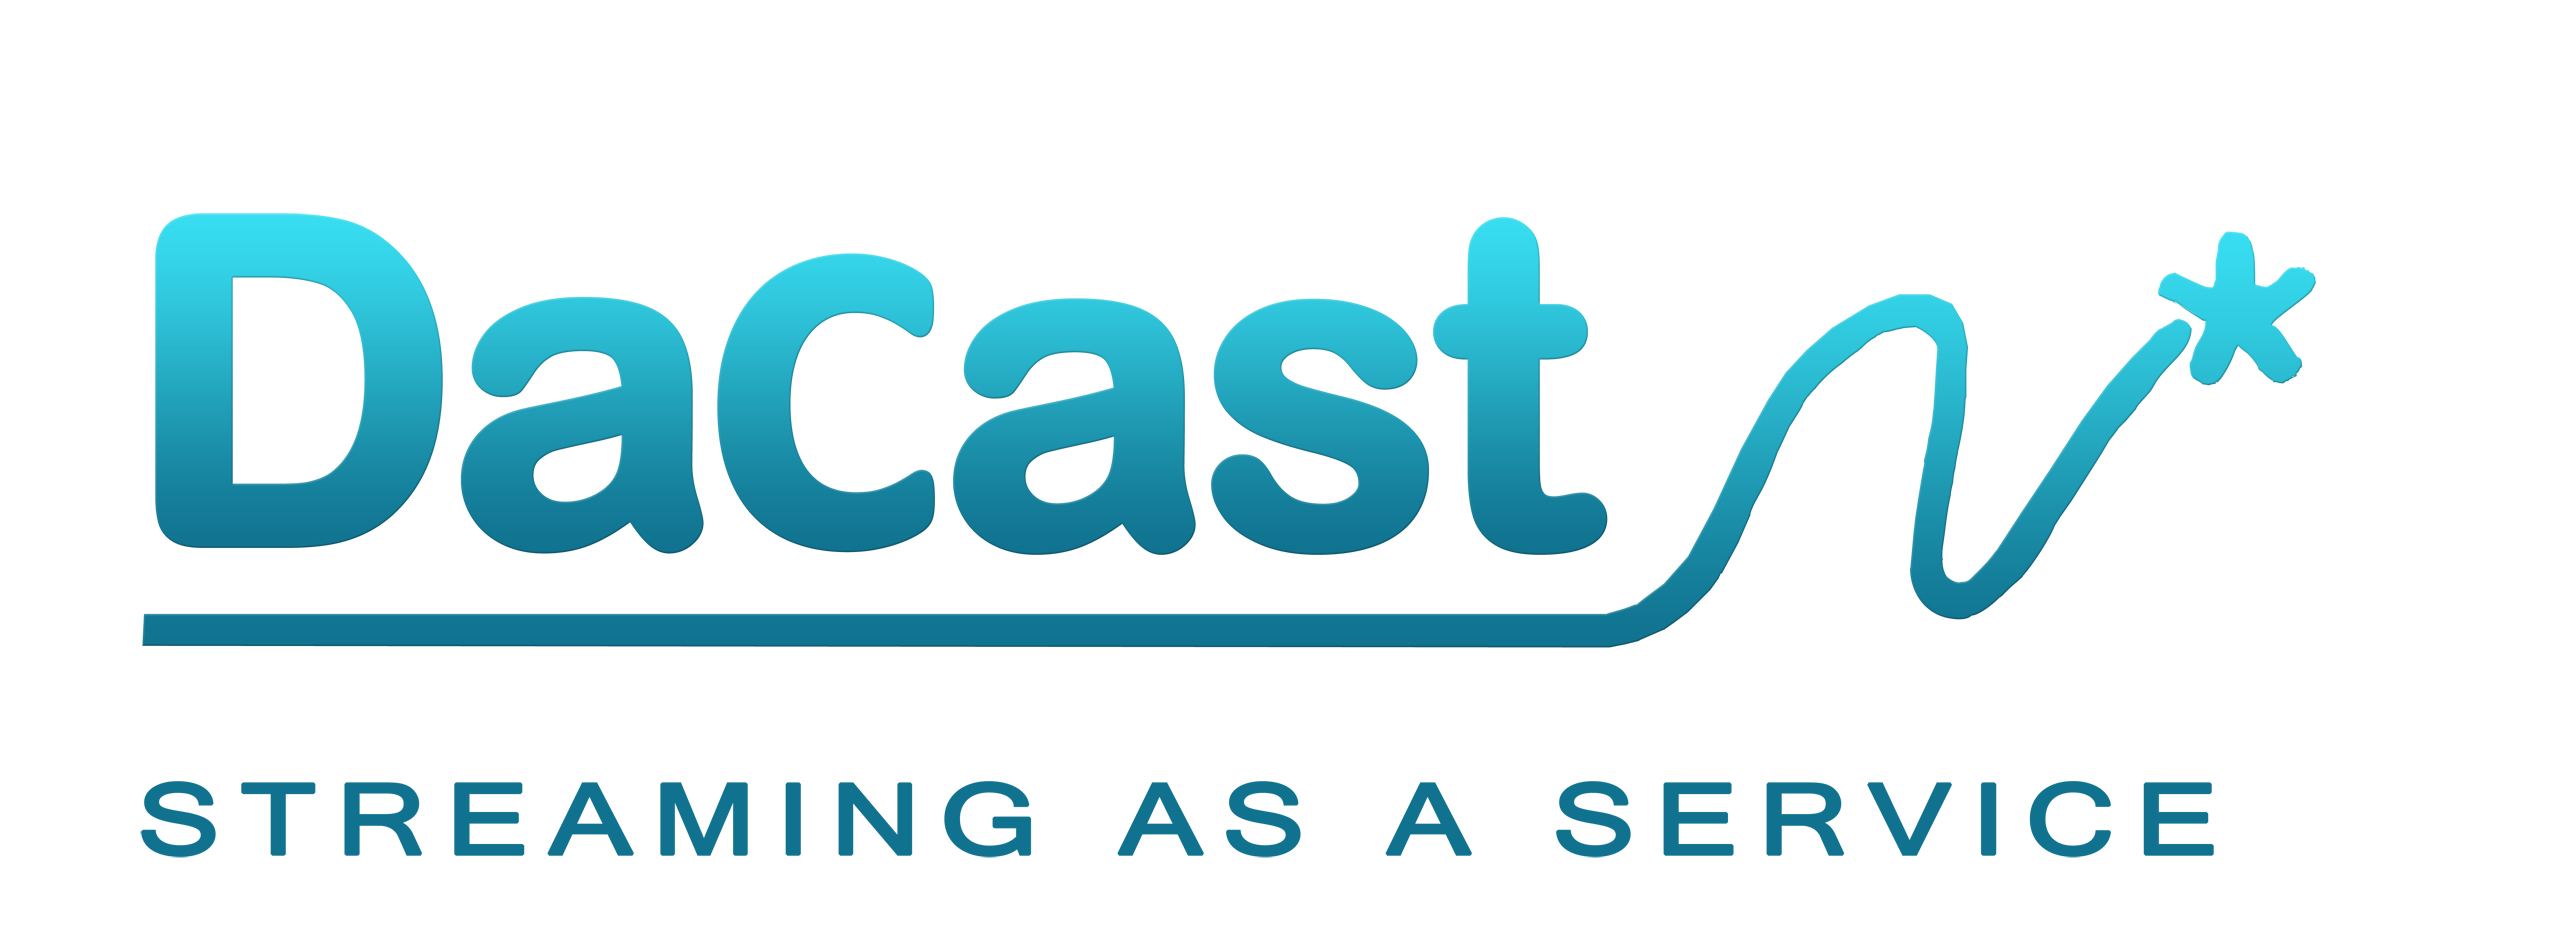 daCast streaming as a service